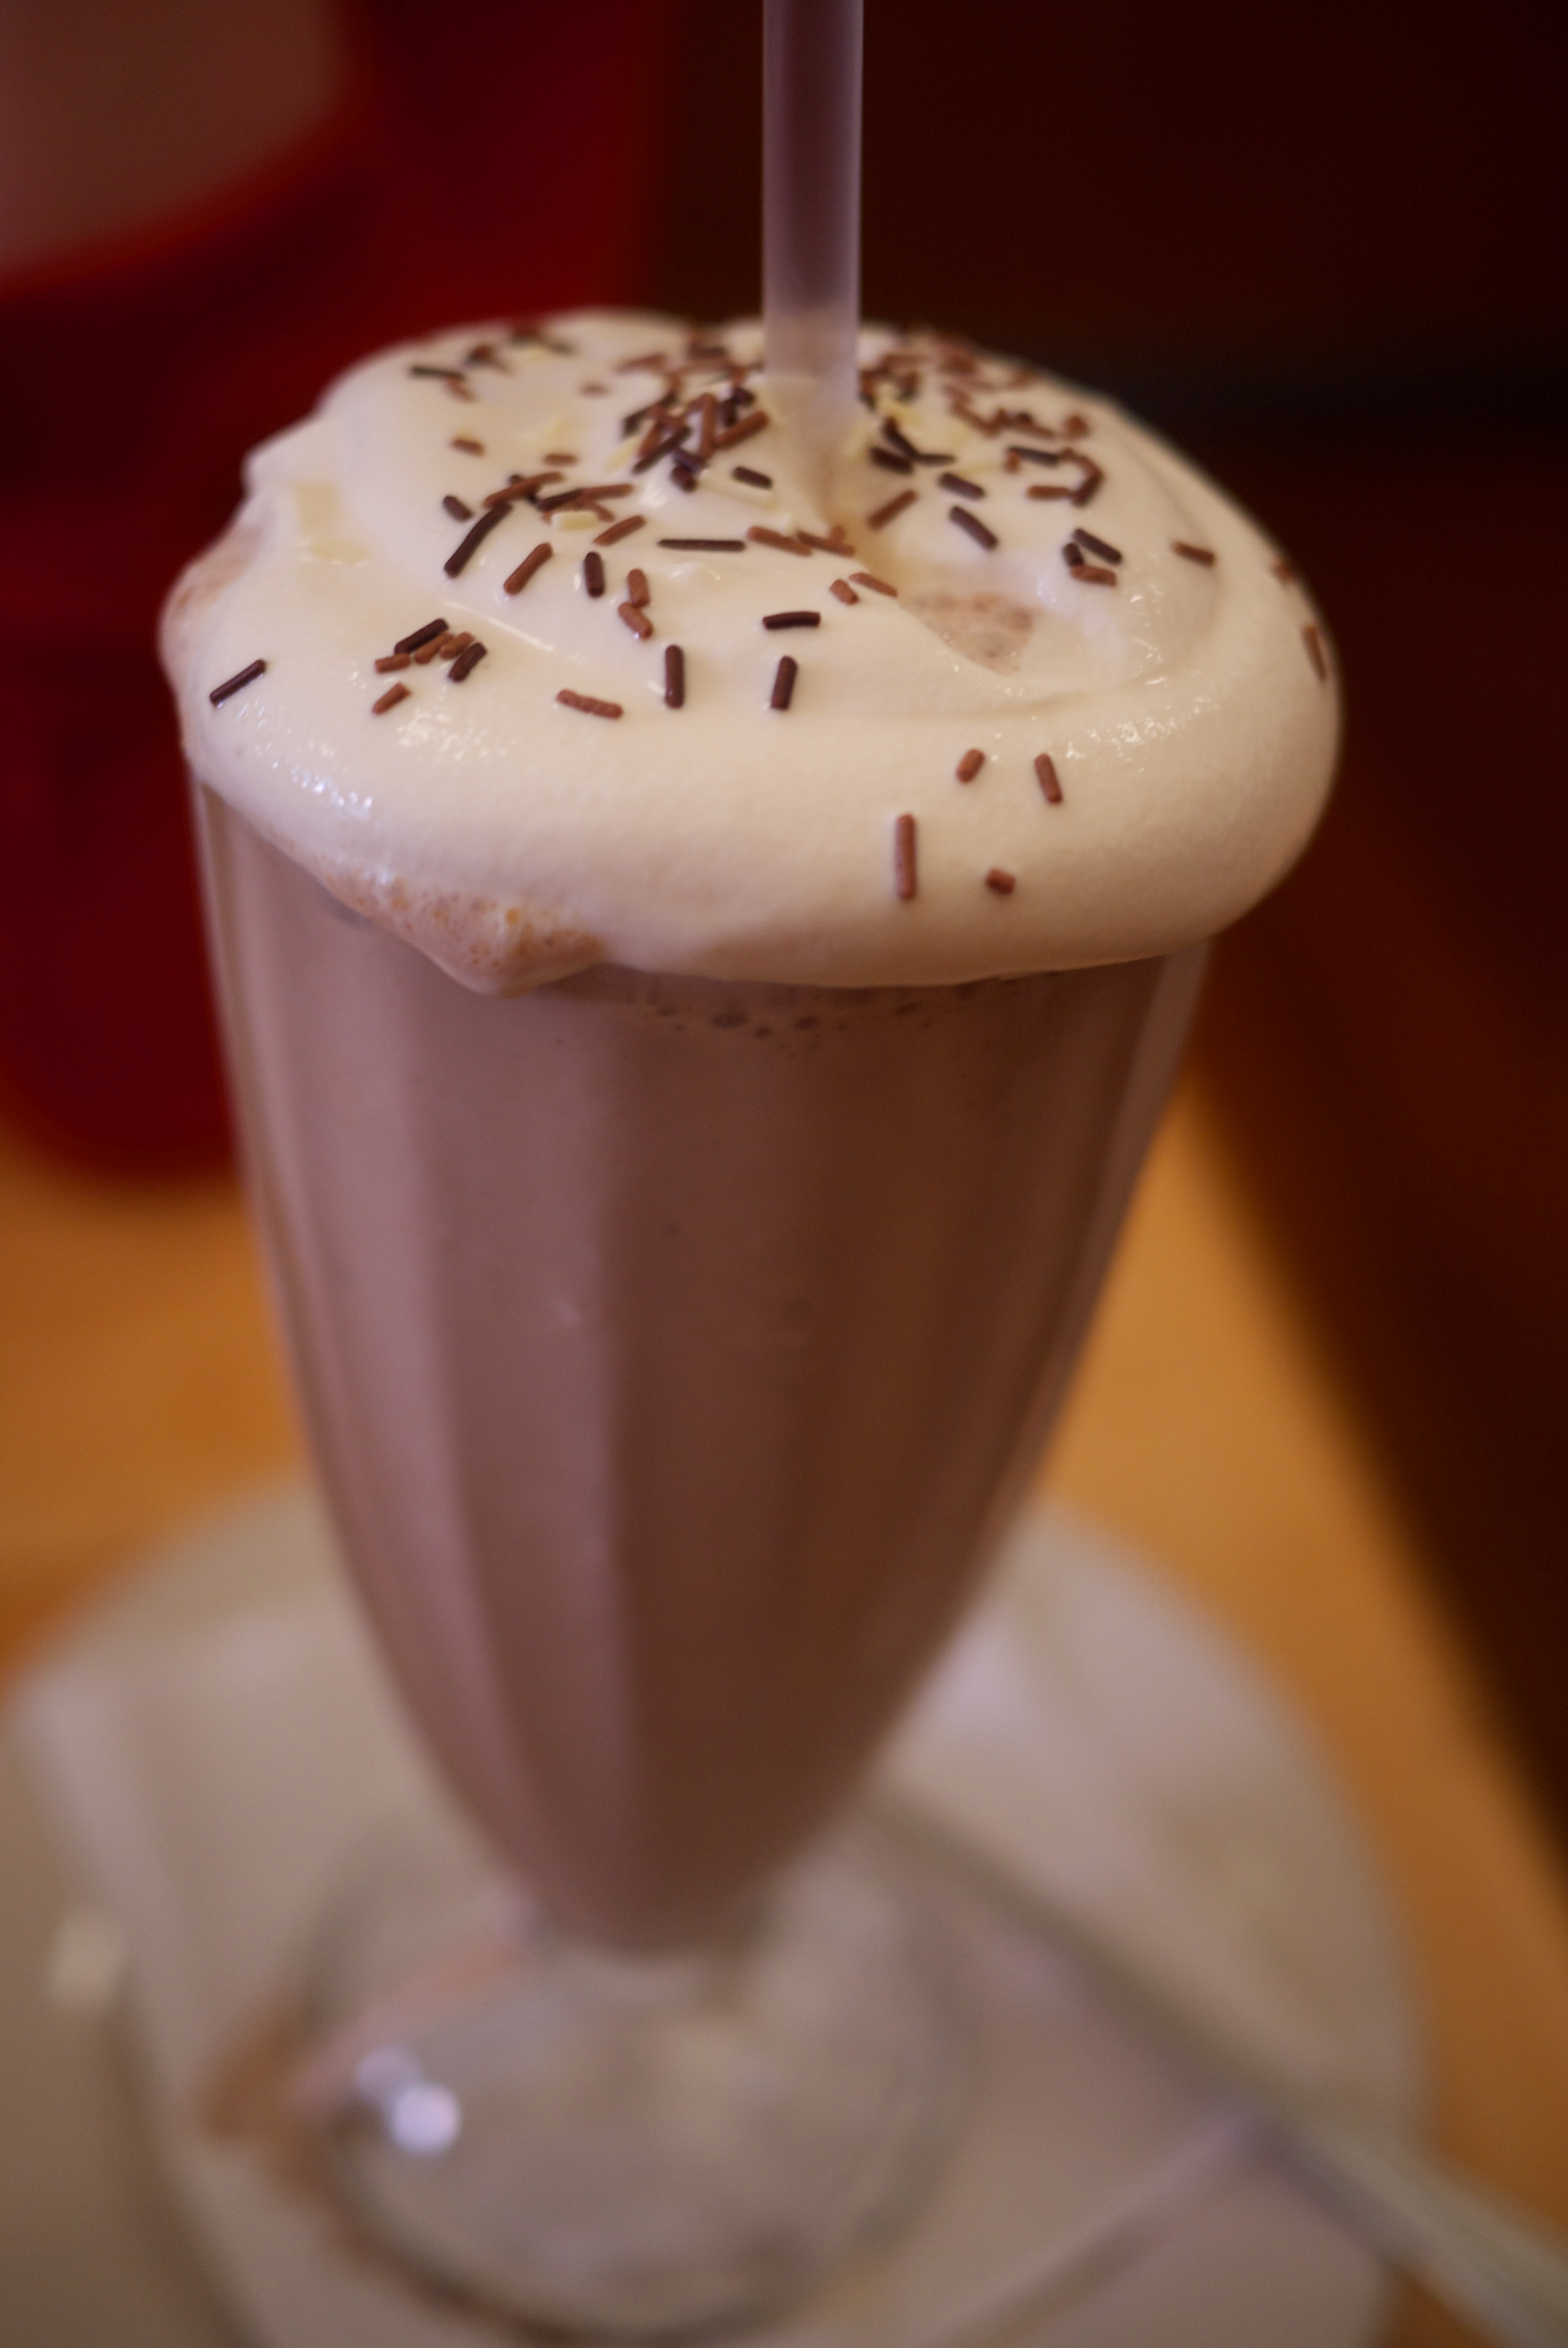 milkshake chocolate malted milkshake chocolate shake or malt chocolate ...